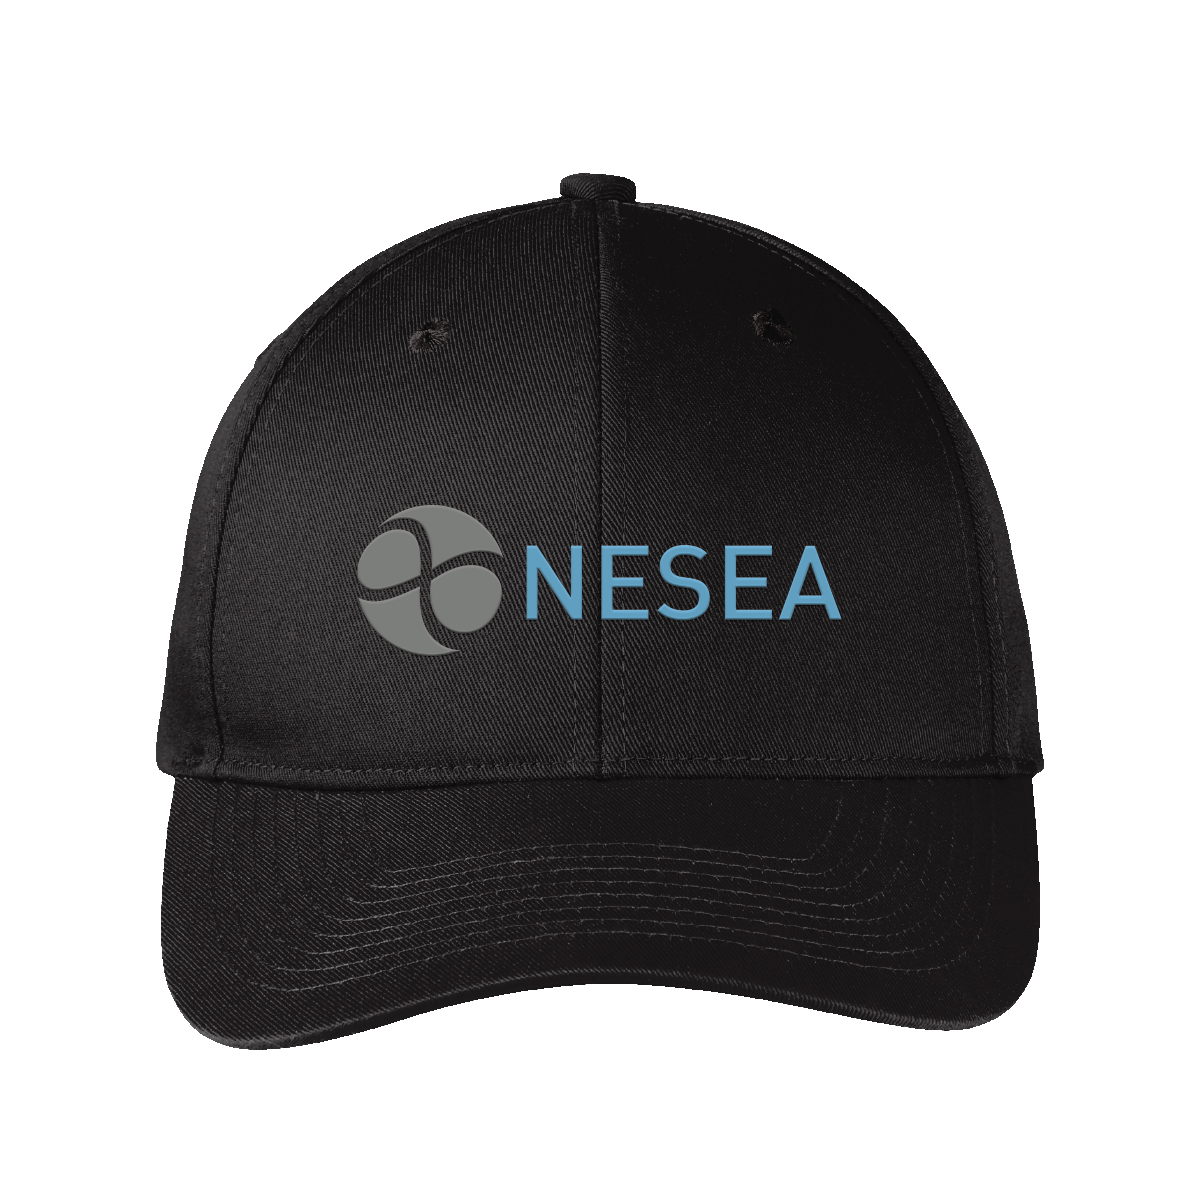 NESEA Baseball Hat (currently available in 3 colors)